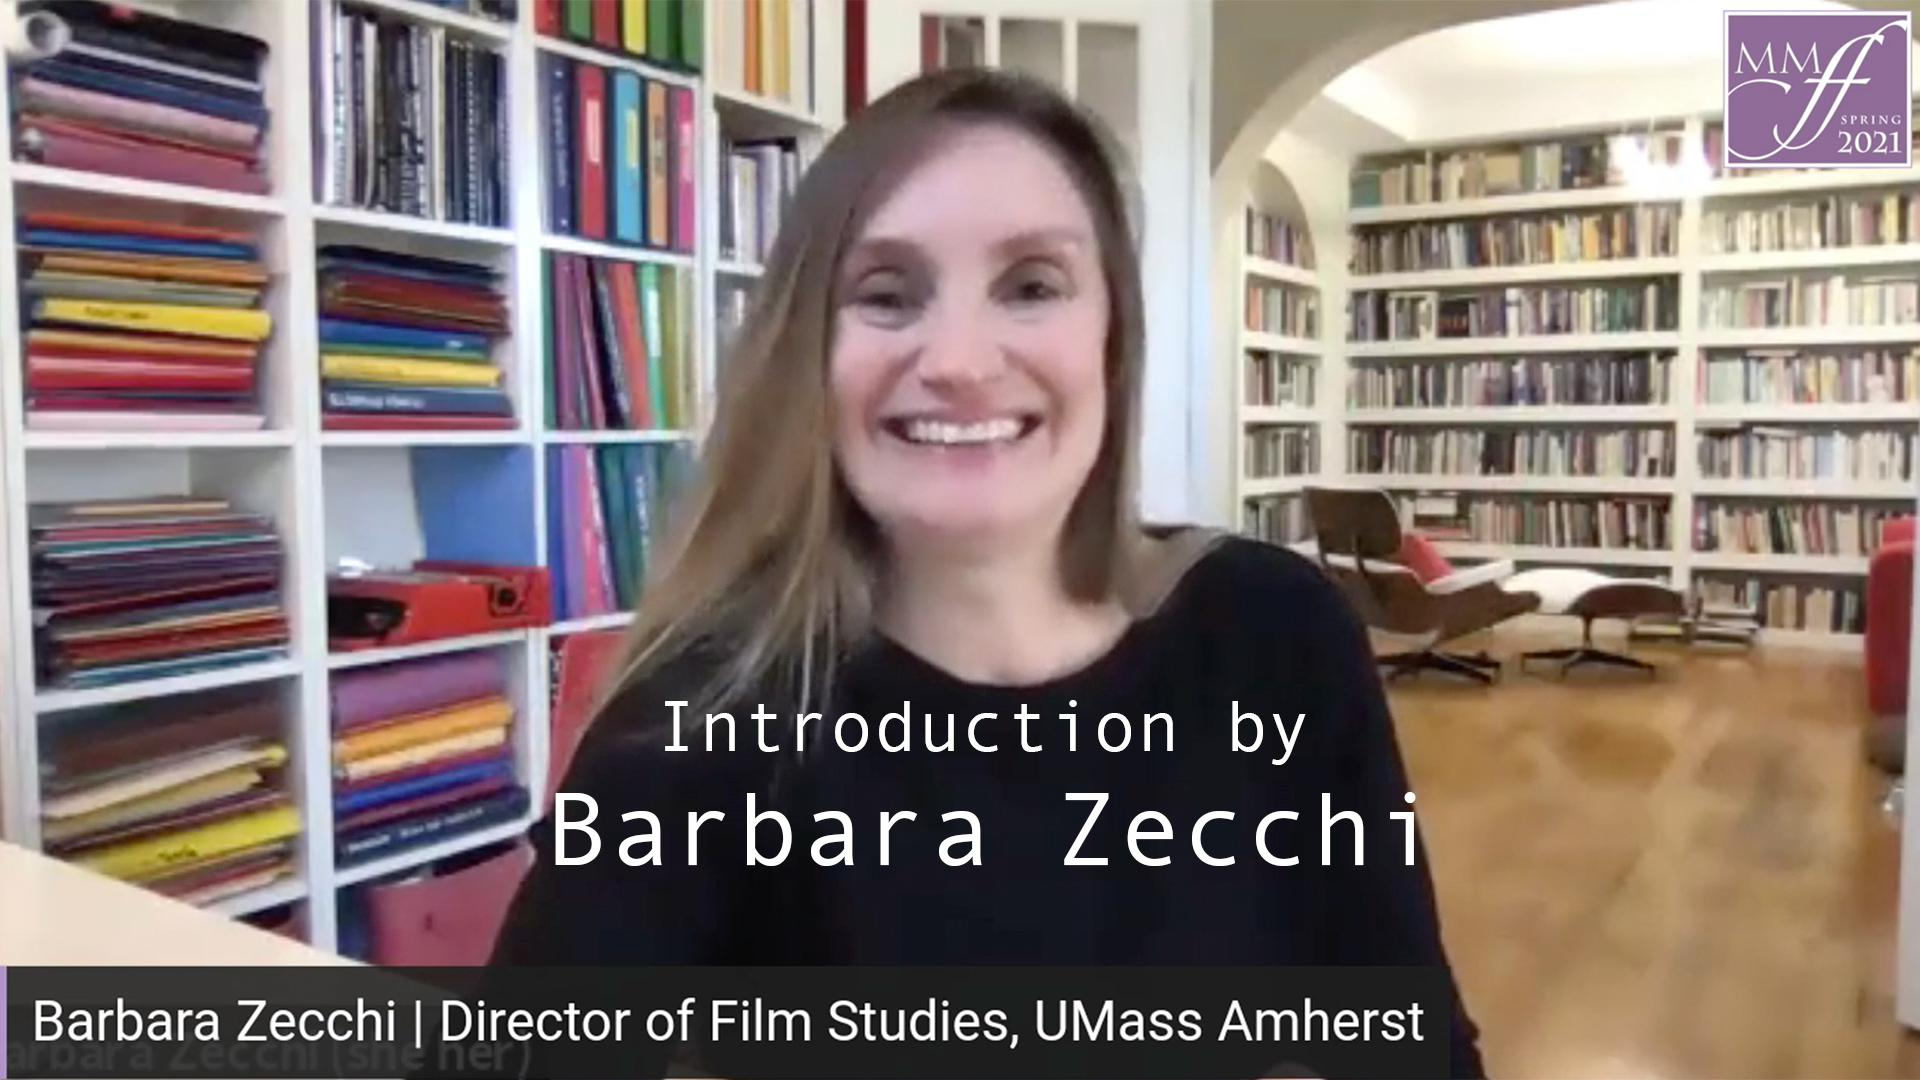 Introduction by Barbara Zecchi